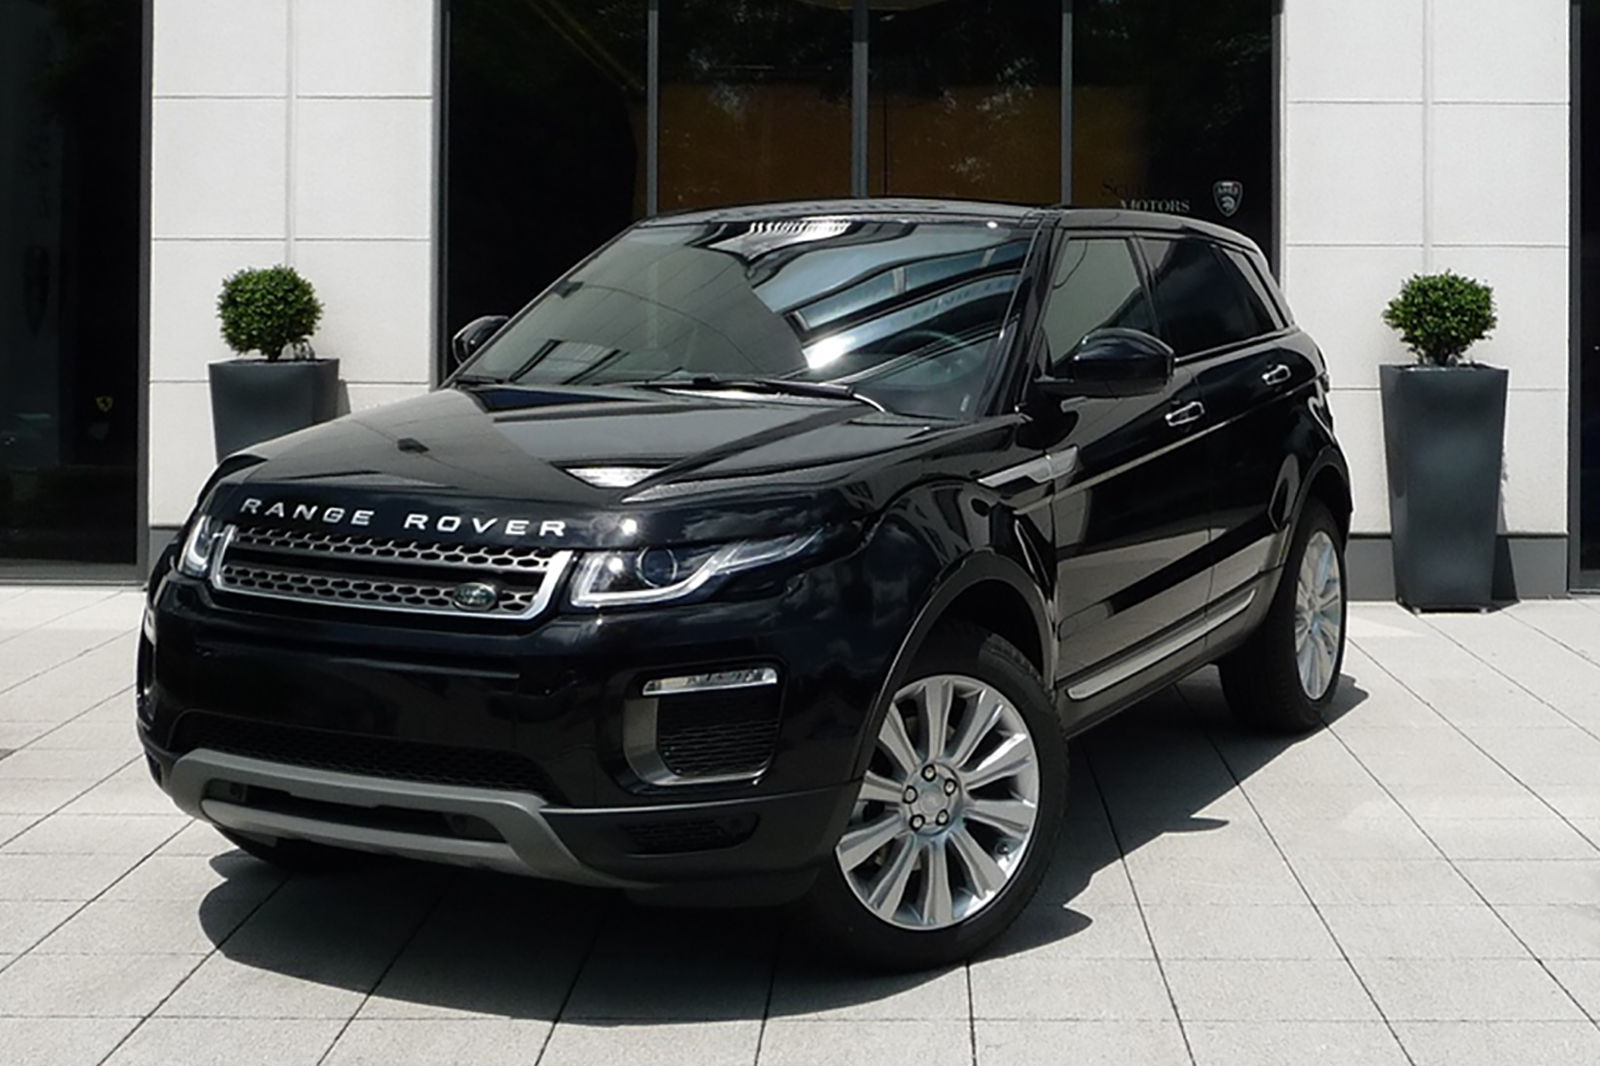 AIL Land Rover Range Rover Evoque HSE 2.0 TD4  7